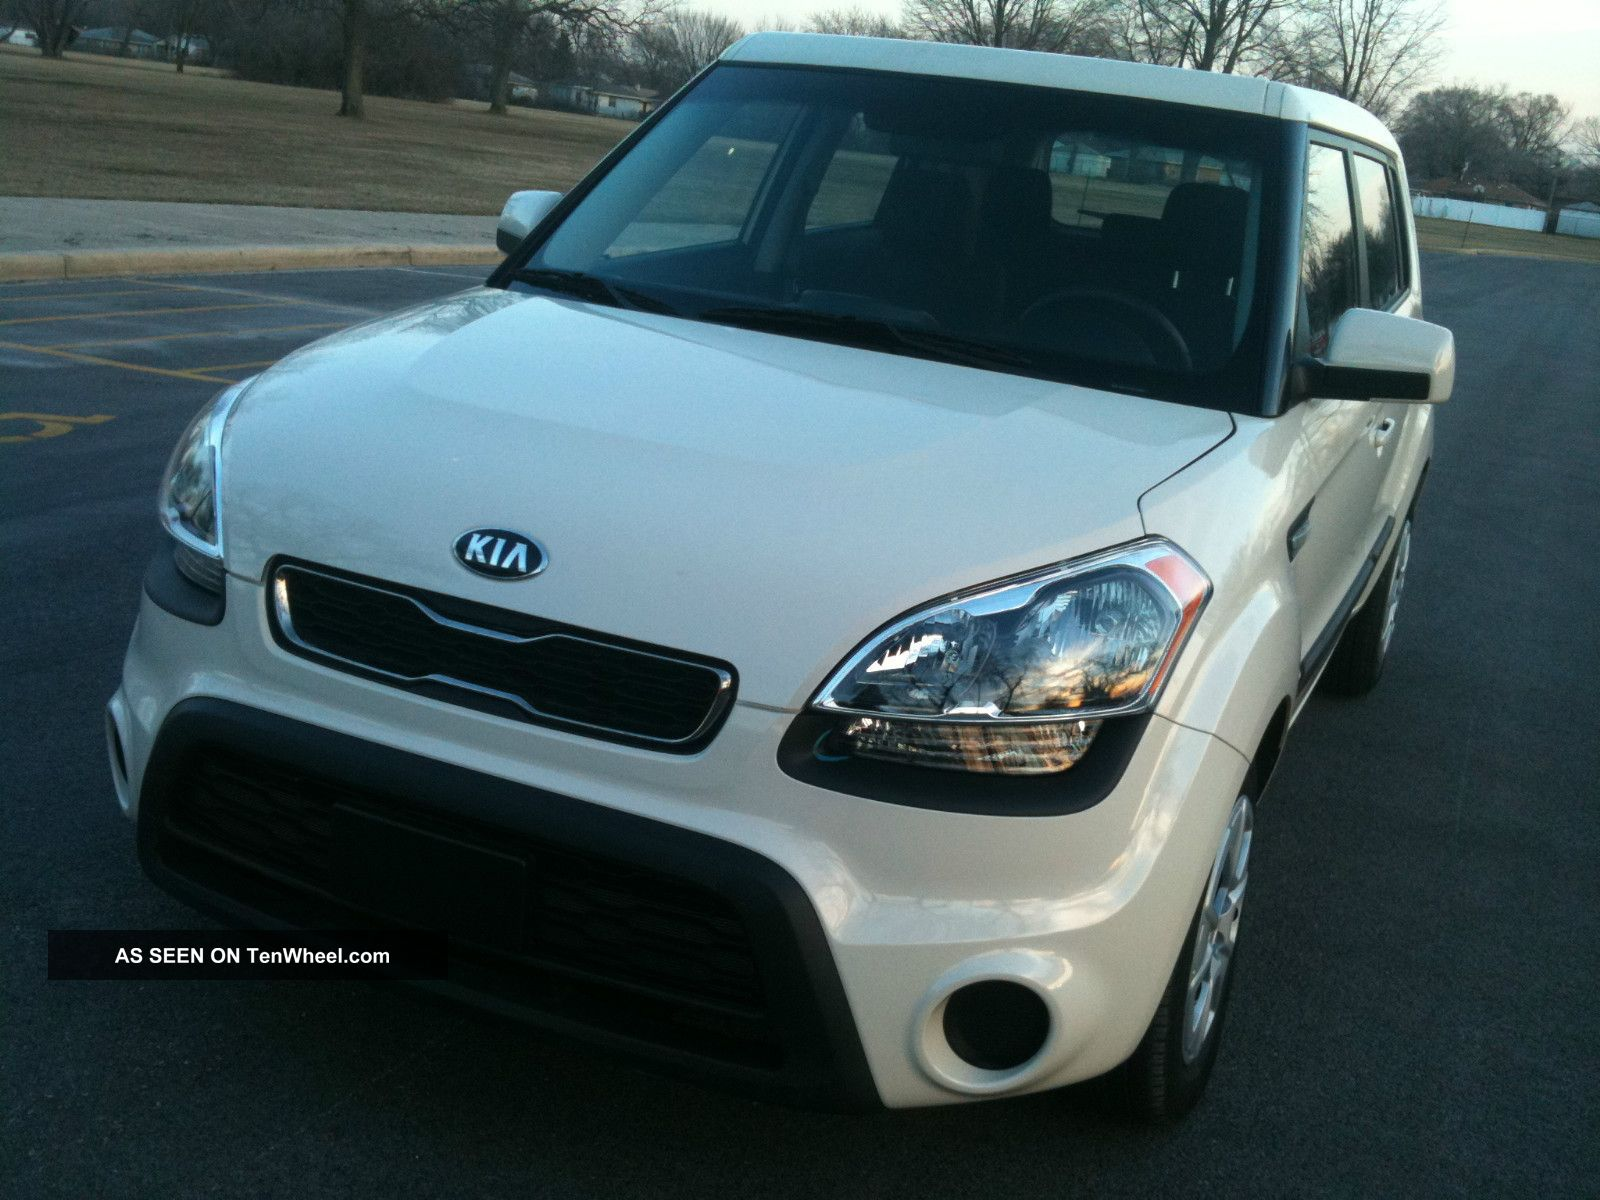 2013 Kia Soul Almost Very Drive Great 6 Speed Manual Soul photo 1